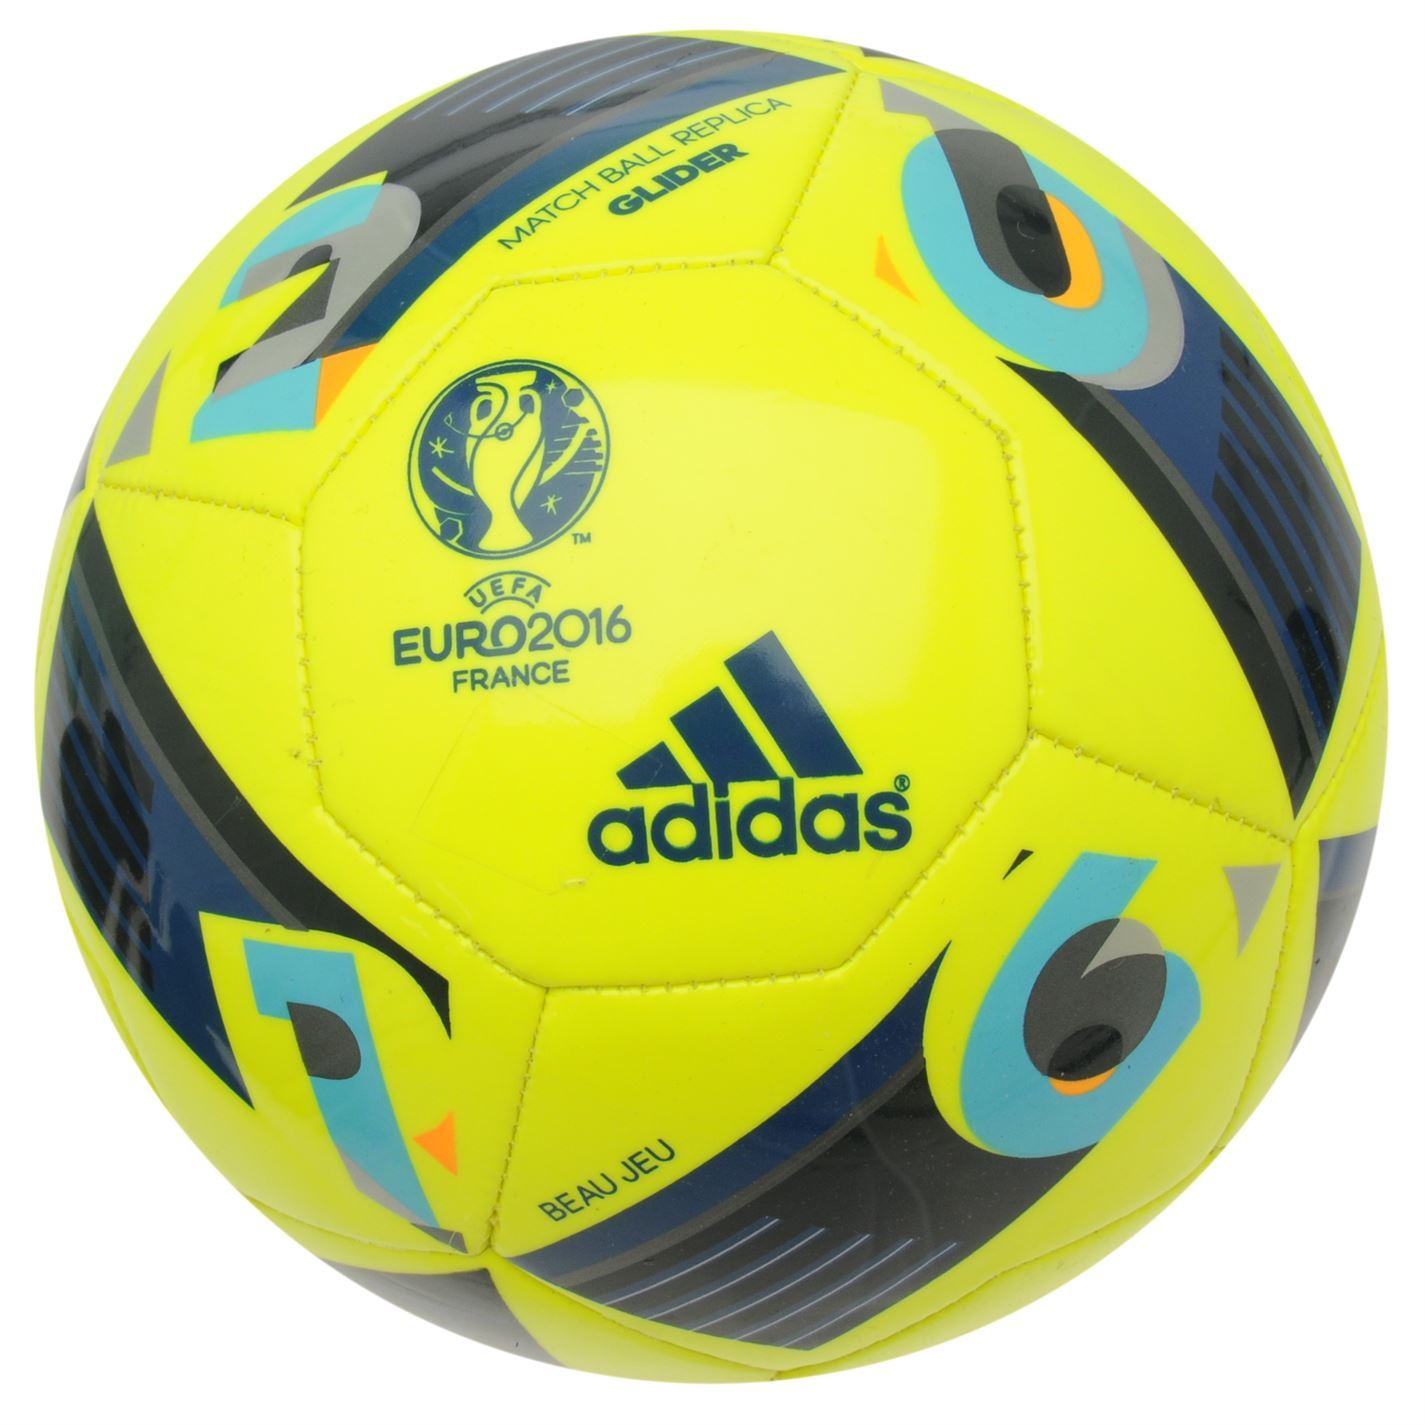 Adidas Euro 2016 Match Ball Glider Football Solar Yellow Soccer Ball ... bbd87a0b5f926